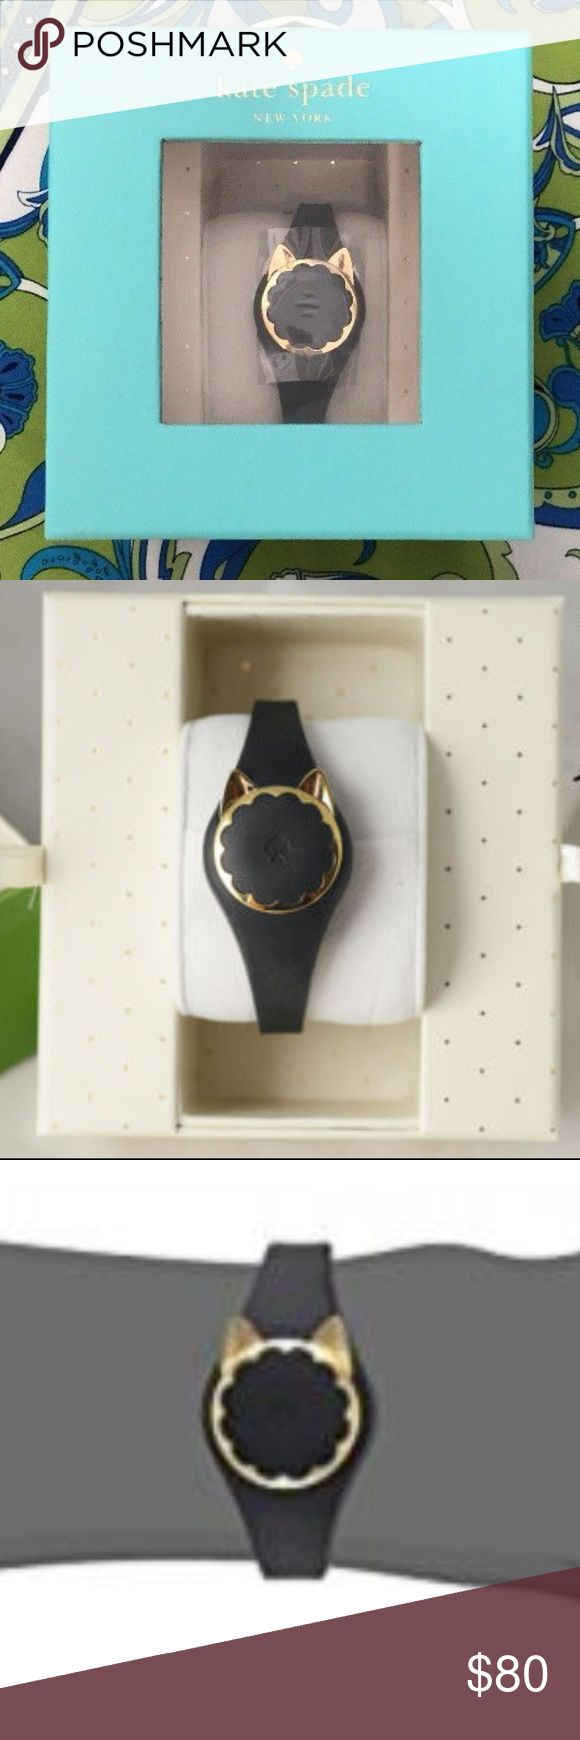 Kate Spade Black Cat Scallop Activity Tracker New in Designer Box Retail $128 Includes Instructions * Battery * Case Back Tool * Quick Start Guide * Warranty Stay active with step tracking dancing counts! & set personal goals, count down the days to life's celebrations & track every wink of beauty sleep Receive LED light notifications control music & take selfies Non-charging, replaceable battery  Gold-tone stainless steel round case Links Automatically to the kate spade New York Connected…